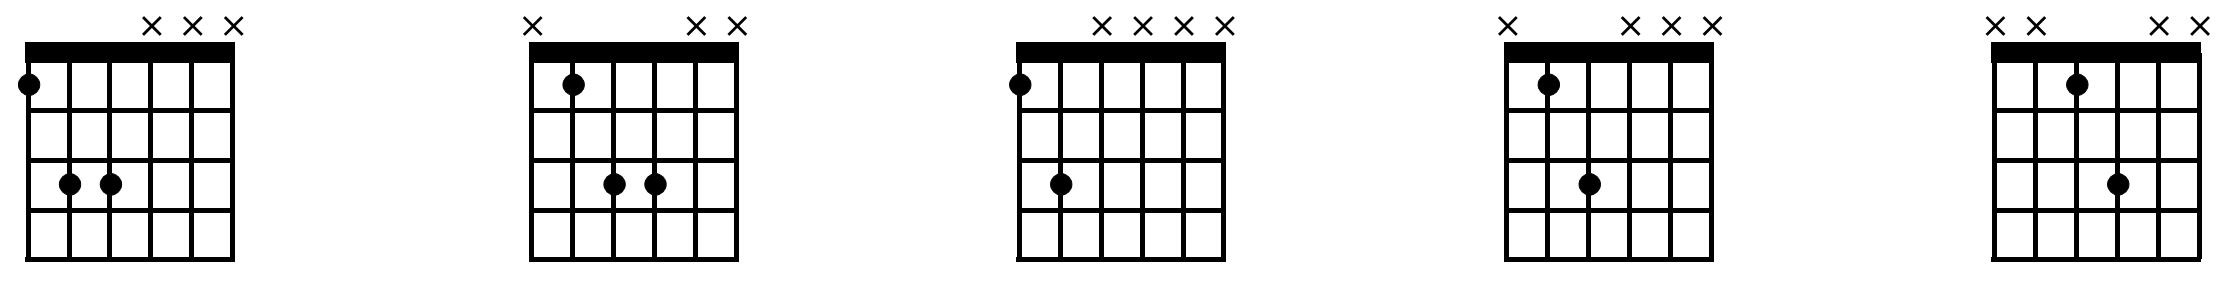 Christian Guitar Chords Worship Arts Conservatory